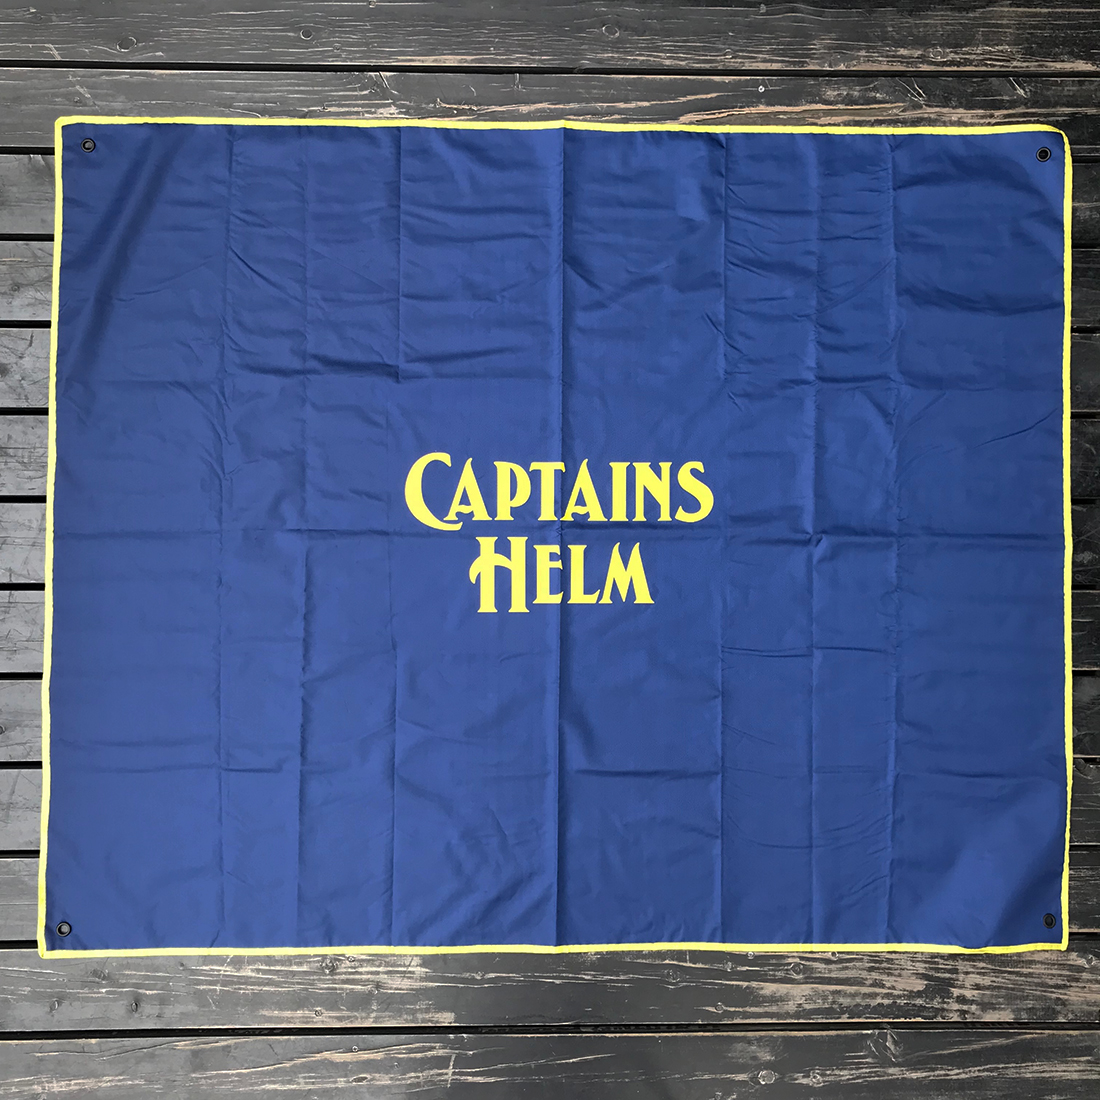 CAPTAINS HELM Delivery -6.2